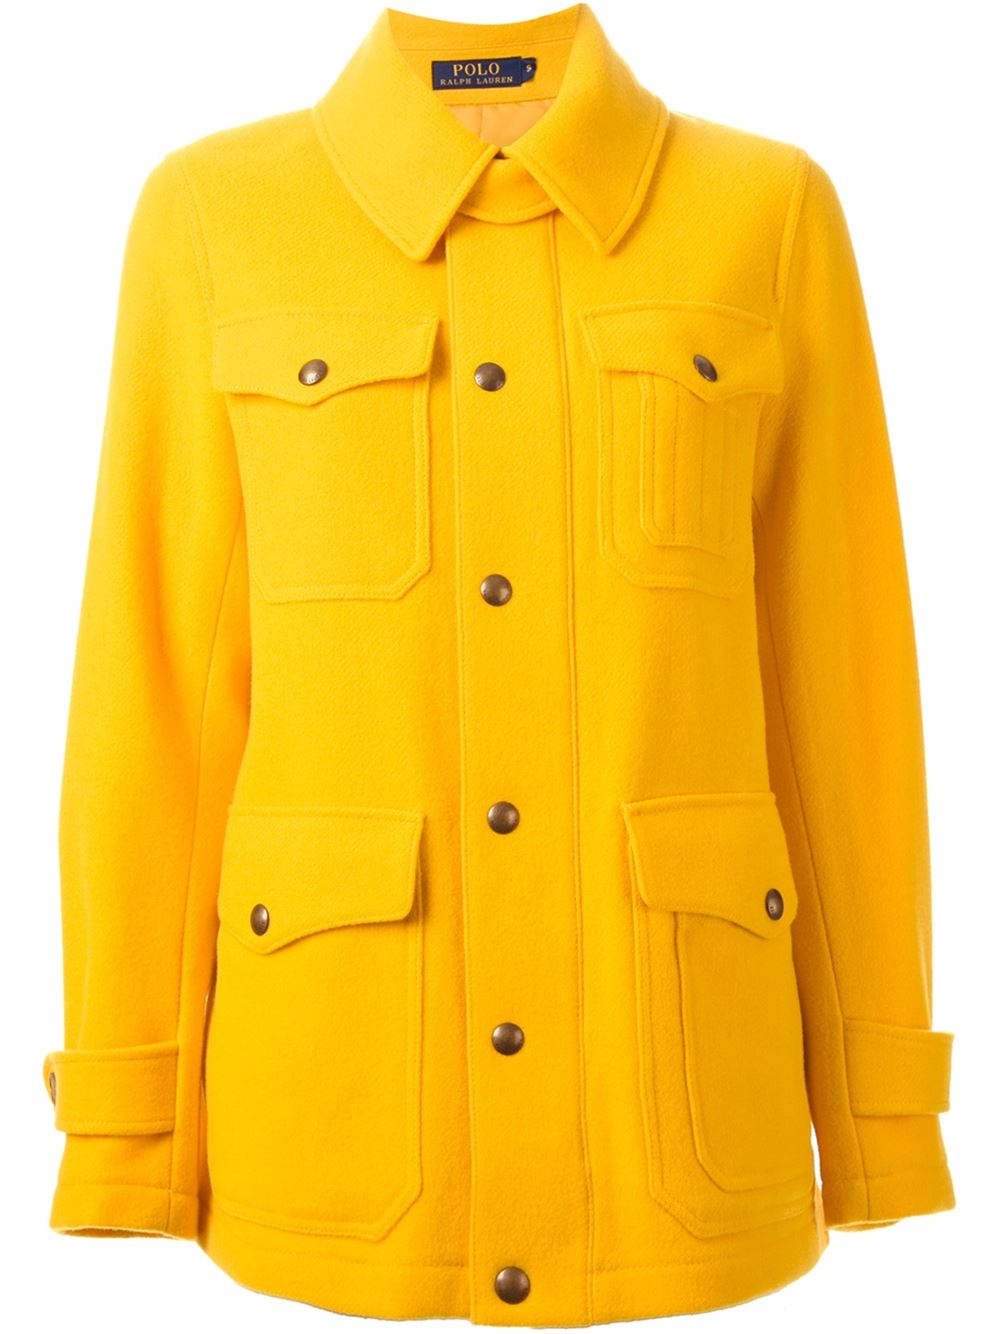 Polo Ralph Lauren yellow oversized pockets coat